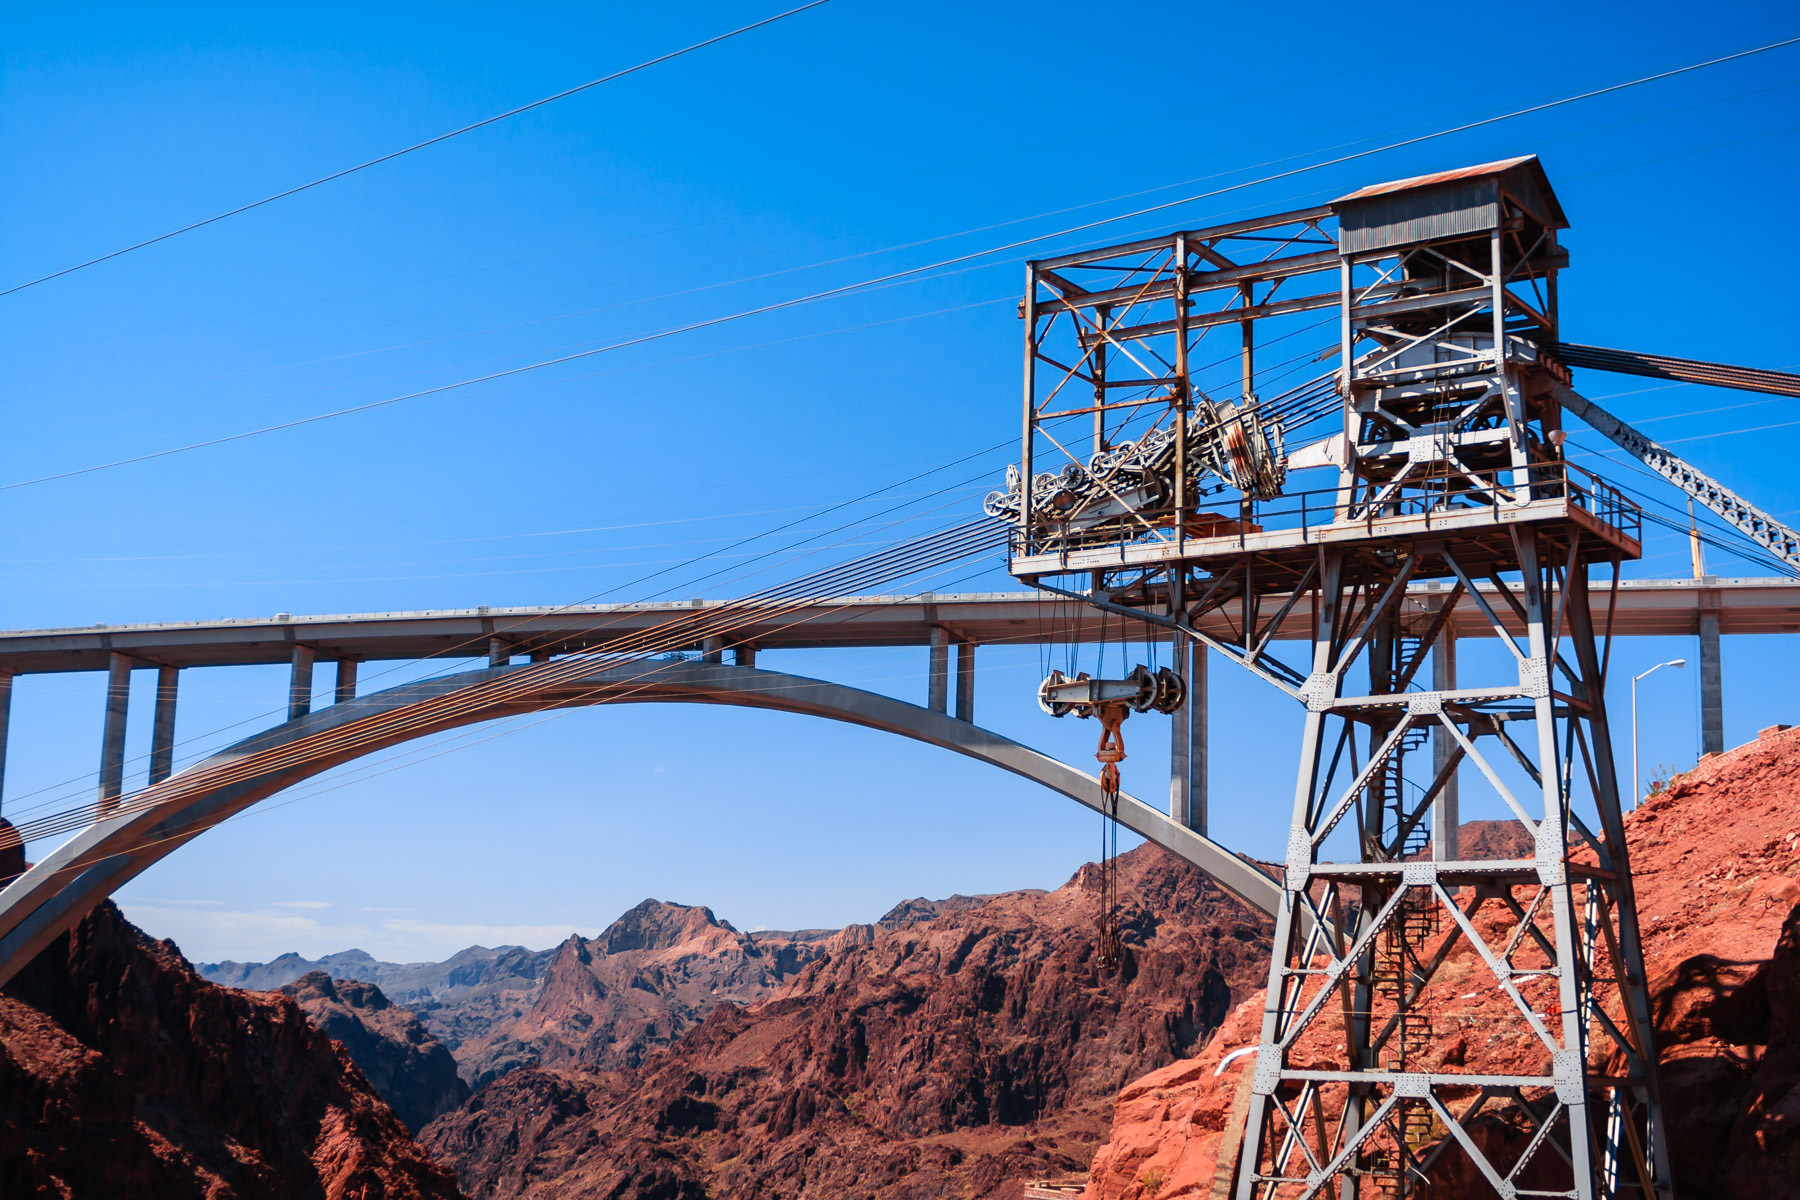 The almost-completed Pat Tillman Memorial Bridge over the Colorado River along the Nevada-Arizona border. This bridge lies just downstream from Hoover Dam and, since opening this fall, acts as a bypass for traffic that was originally directed across the dam.